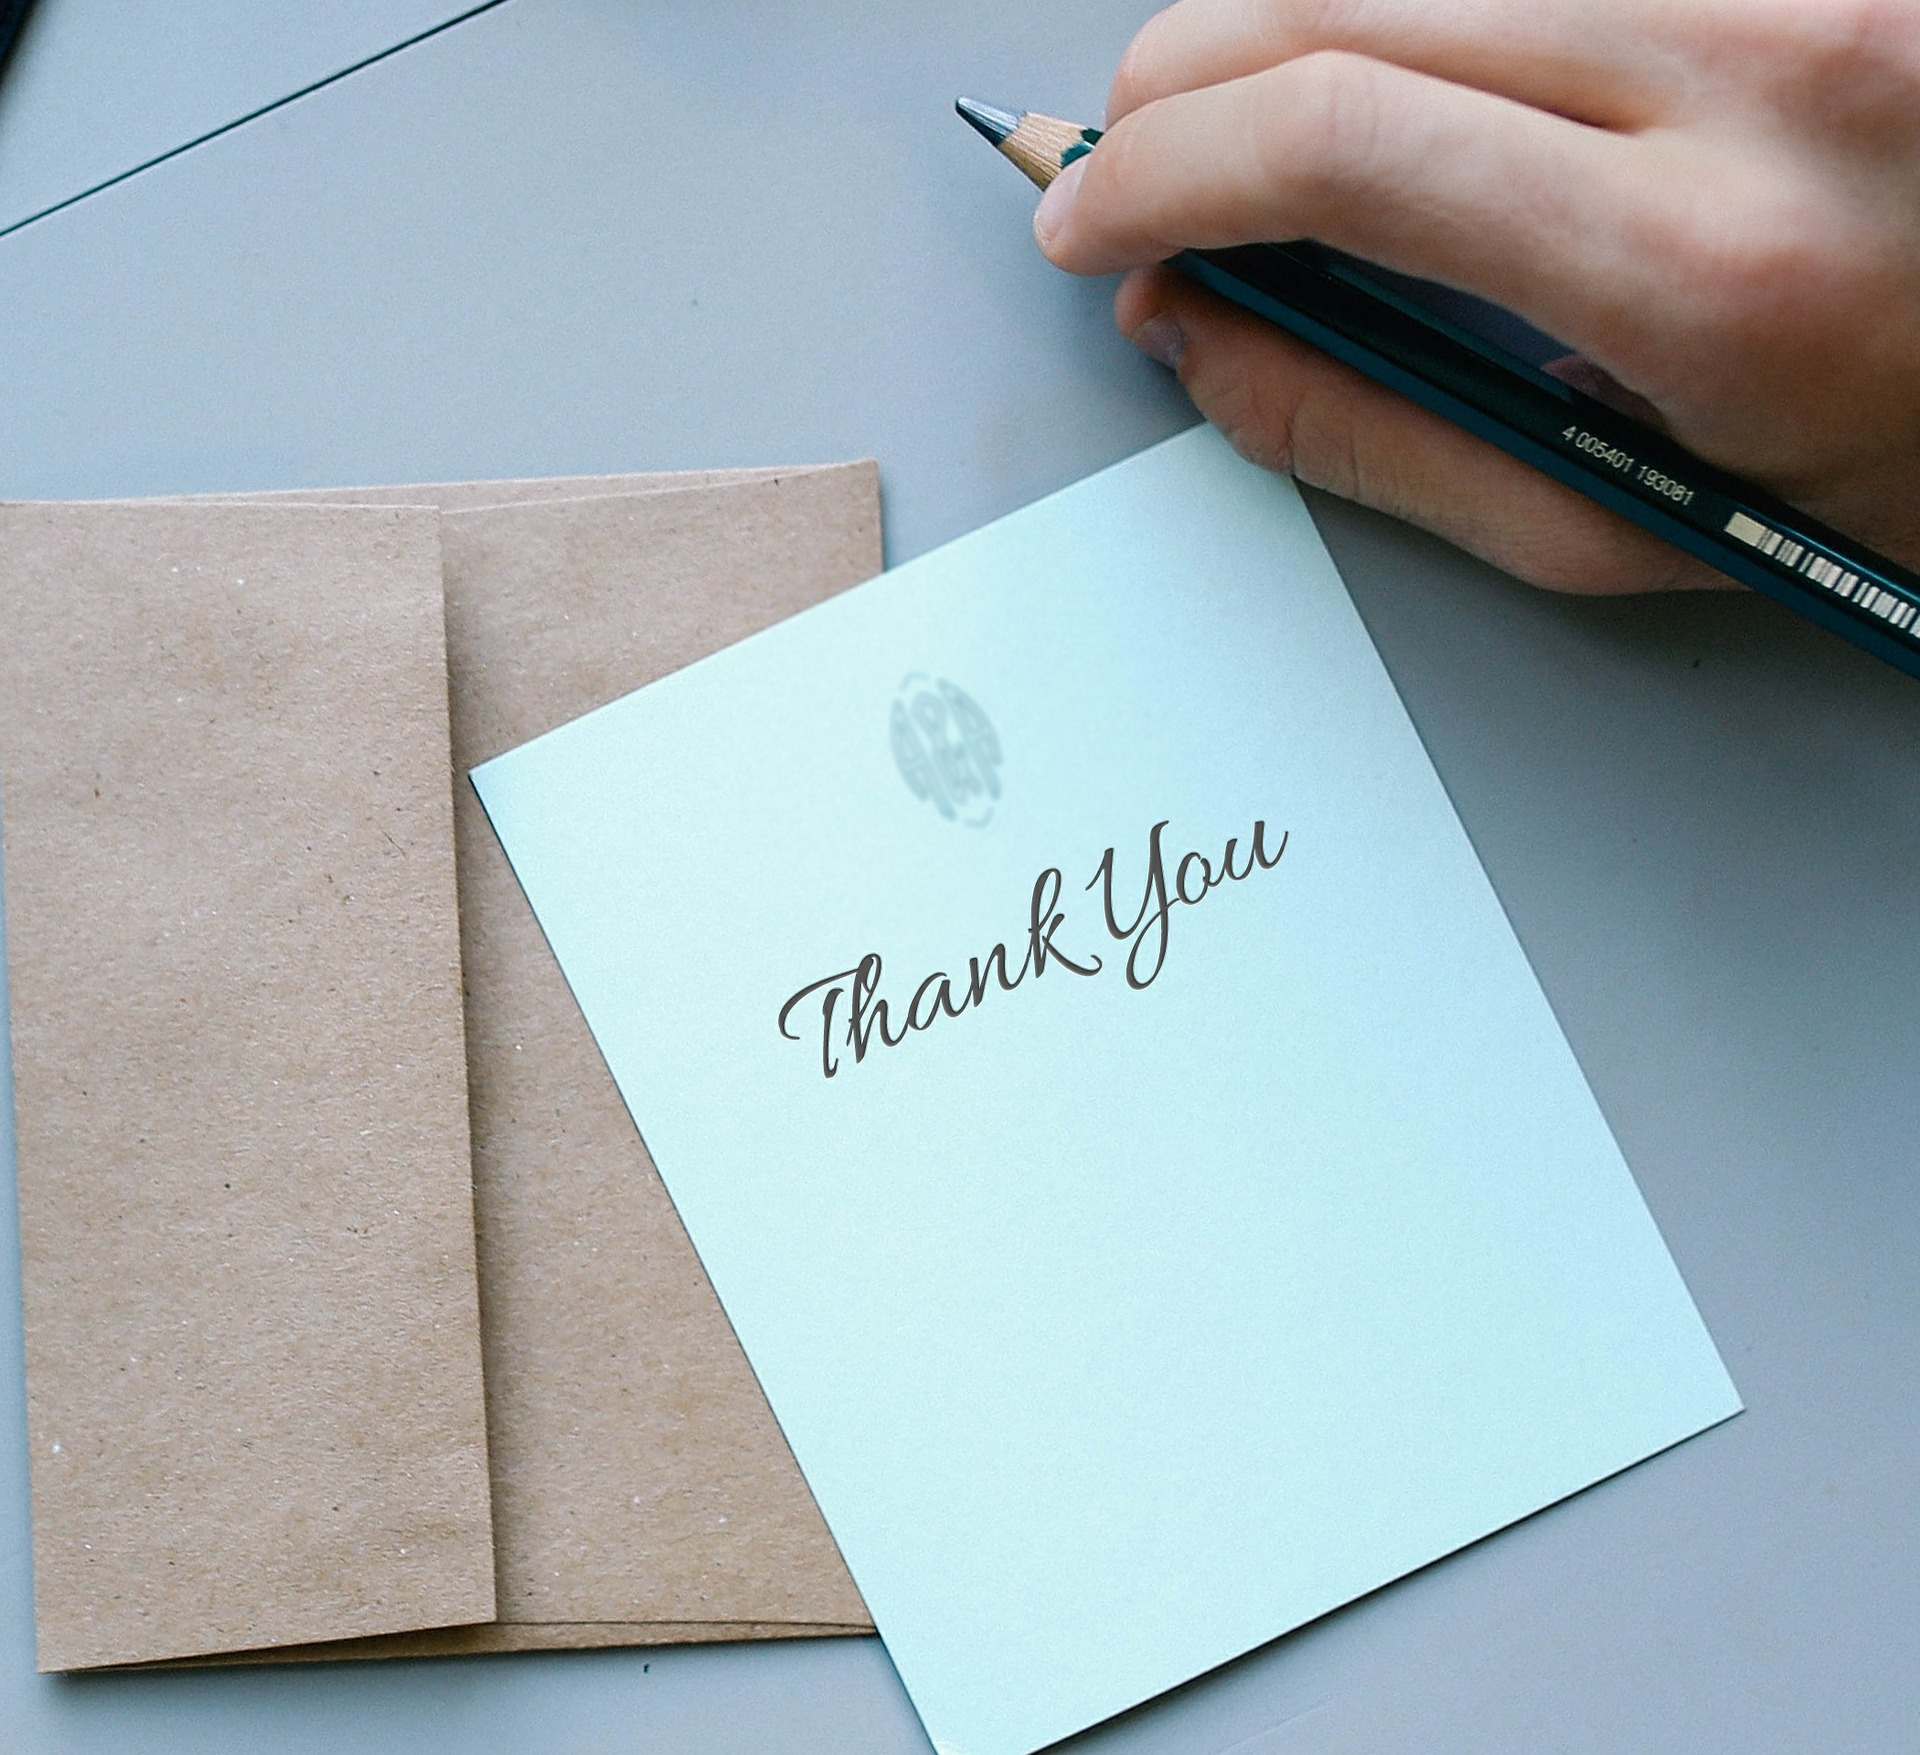 thank you card and envelope next to hand holding a pen